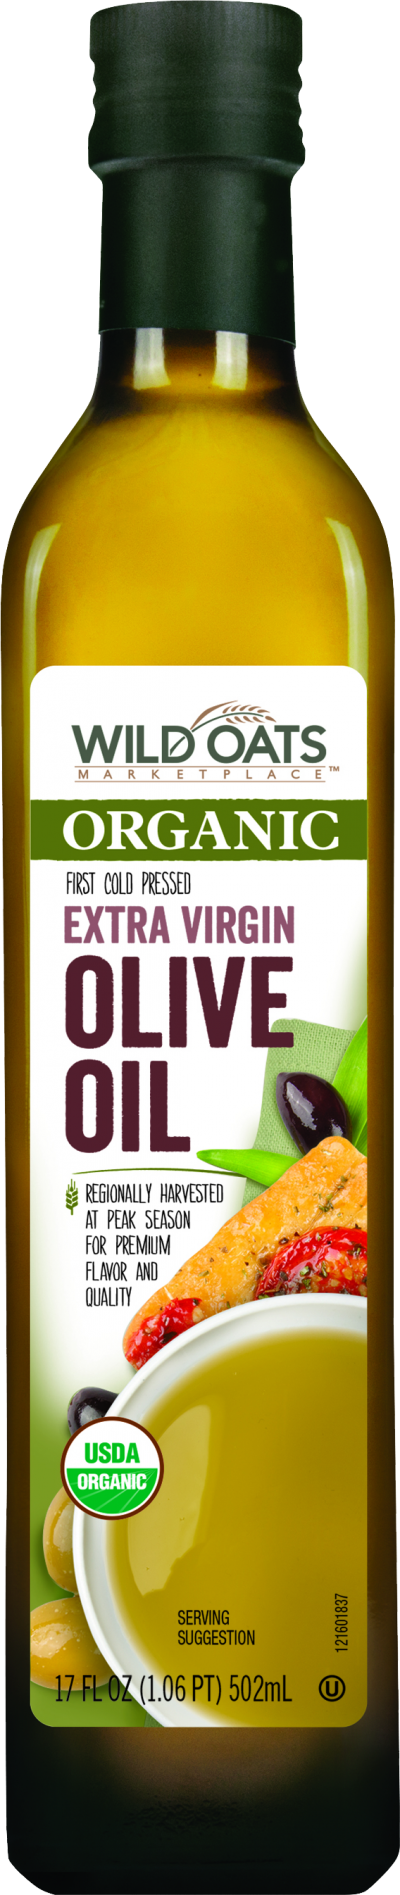 Olive Oil In Glass Bottle Png Images PNG Images